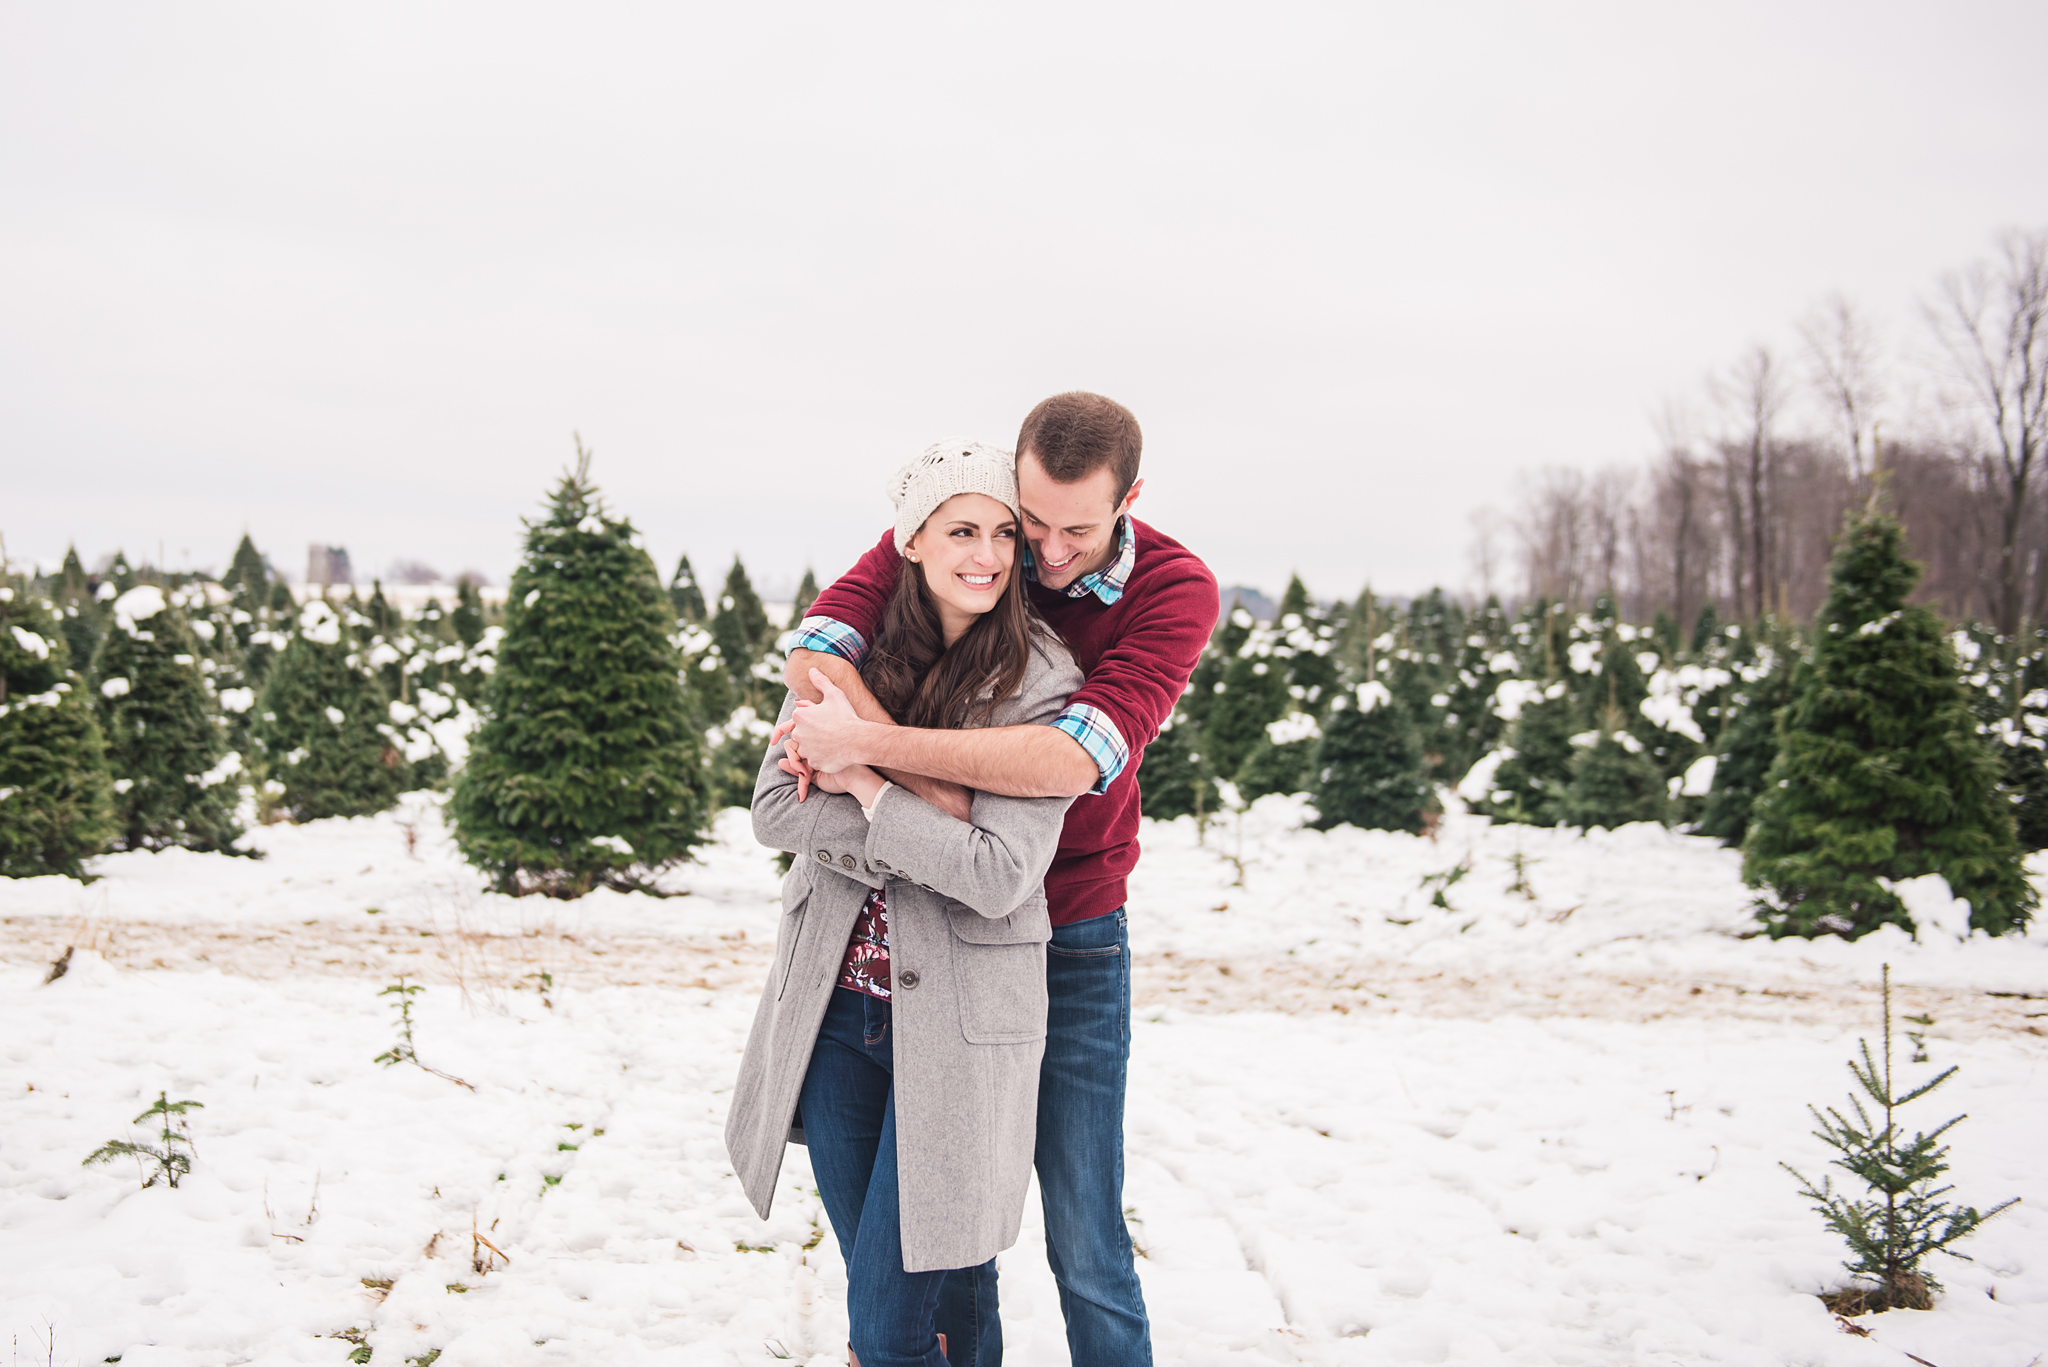 Woody_Acres_Rochester_Engagement_Session_JILL_STUDIO_Rochester_NY_Photographer_153538.jpg